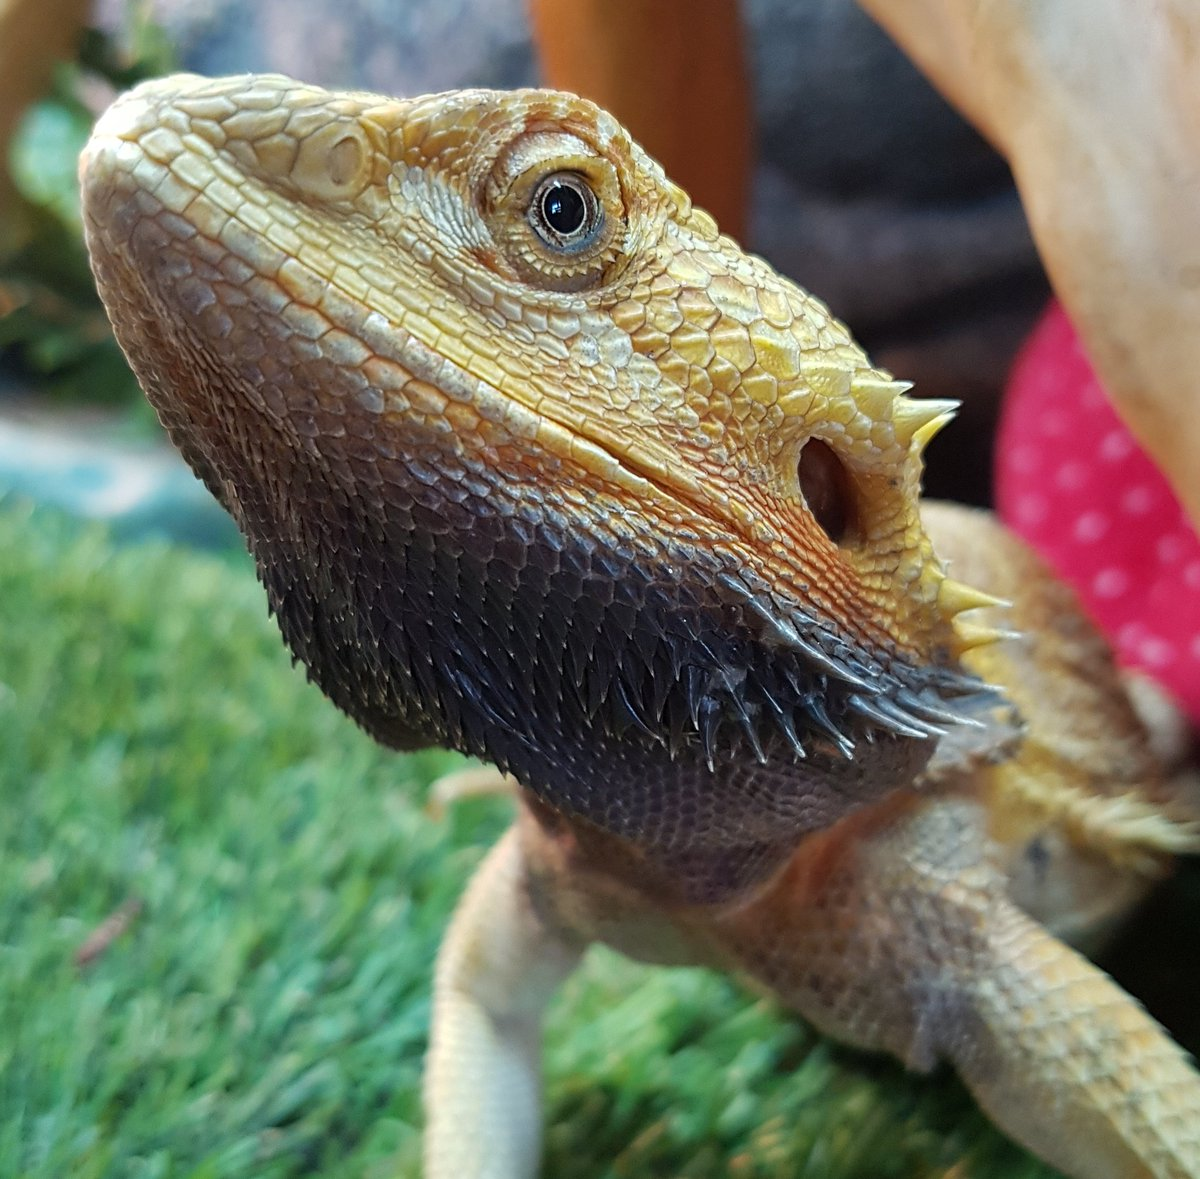 Check out the amazing colours on Flame the dragon this evening. Not sure what this means - she doesn&#39;t seem unhappy. #lizards #reptiles <br>http://pic.twitter.com/dxKacNGJlE